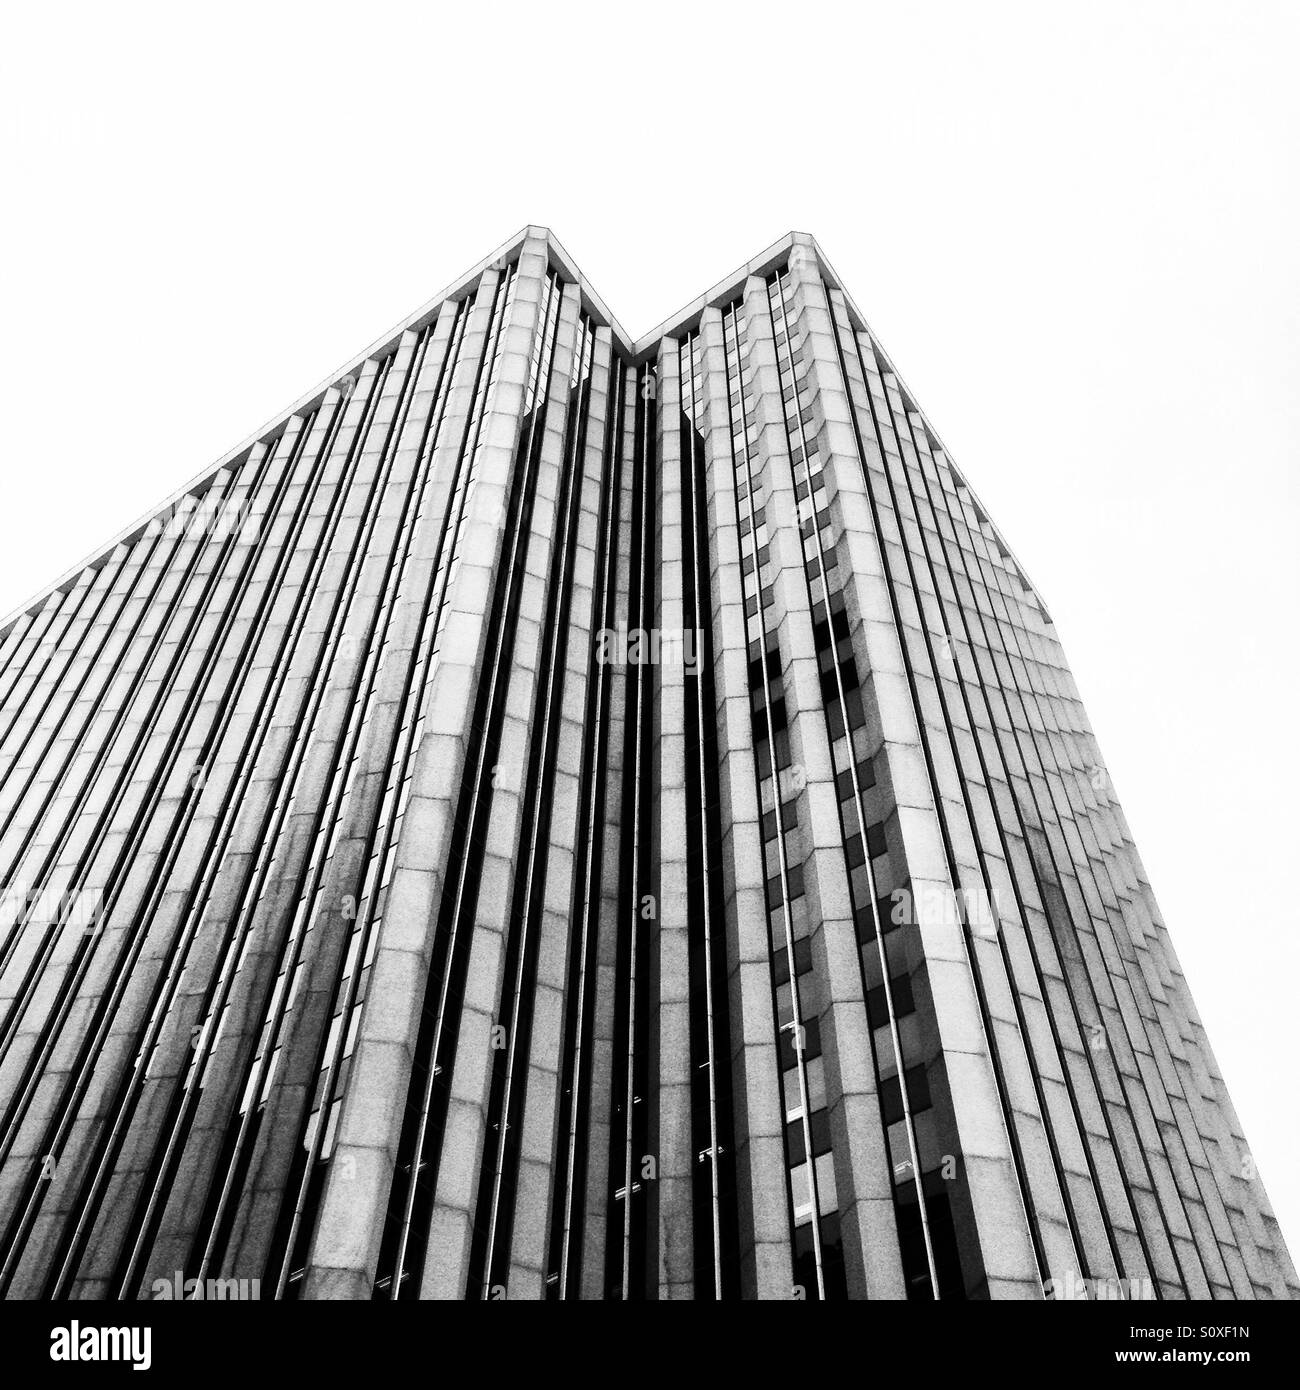 A Tall Building - Stock Image